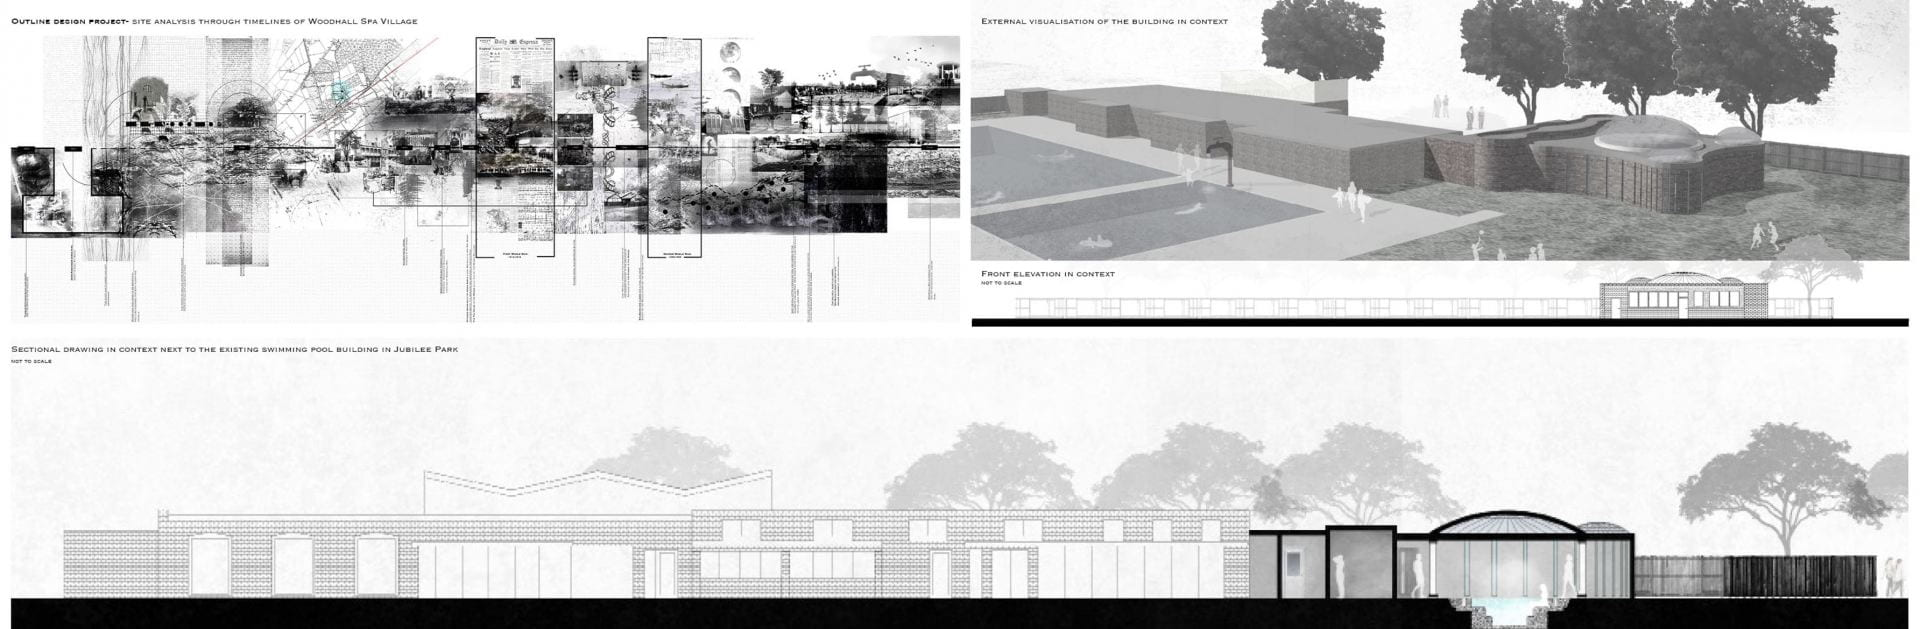 Initial designs for jubilee park showing its elevation